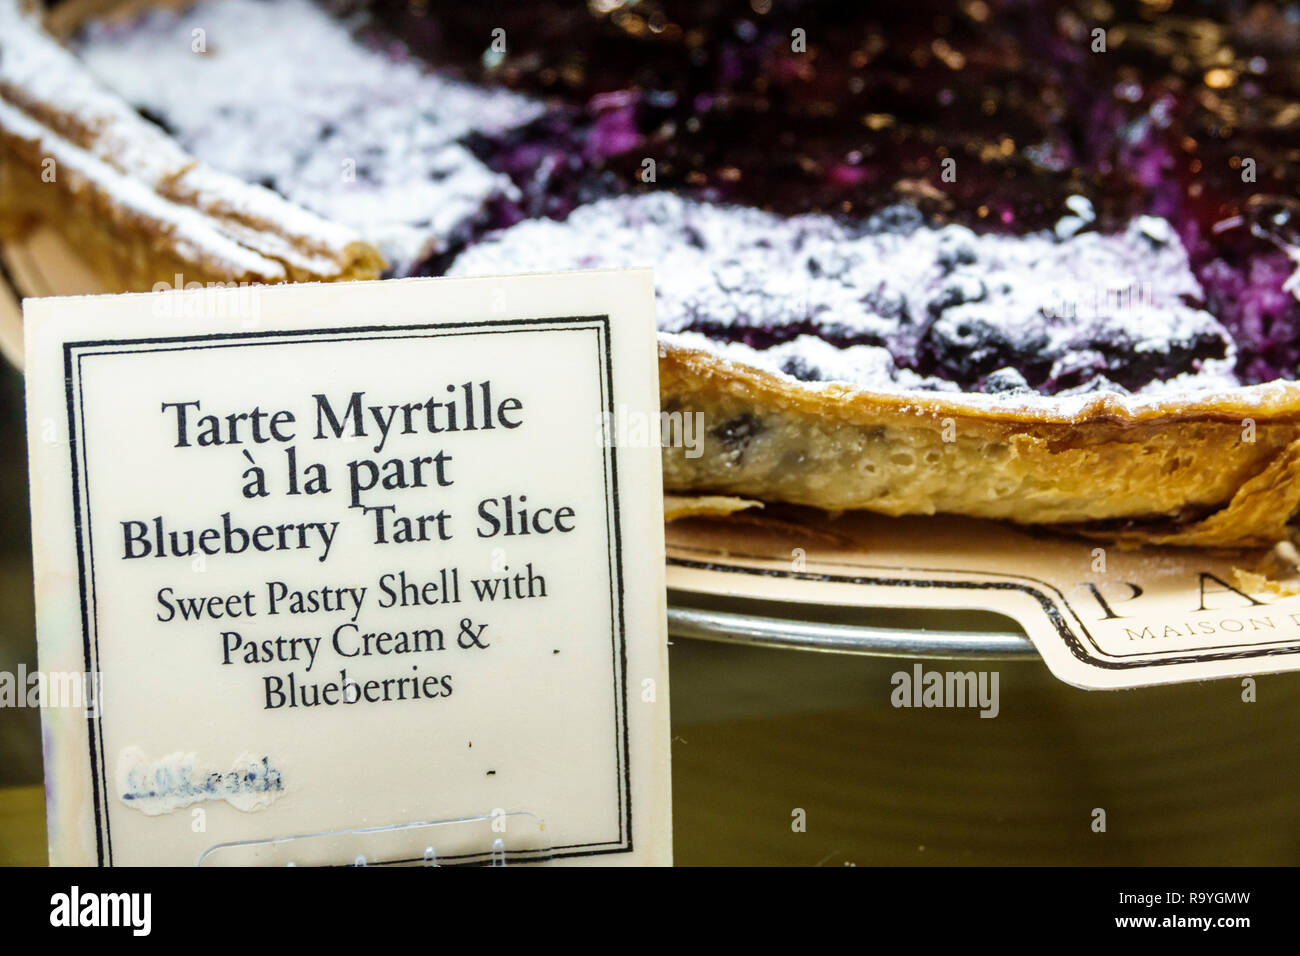 Fort Ft. Lauderdale Florida Sunrise Sawgrass Mills Mall Paul Maison de Qualite Bäckerei Restaurant innen Anzeige Verkauf blueberry tart Schicht Dessert Stockfoto